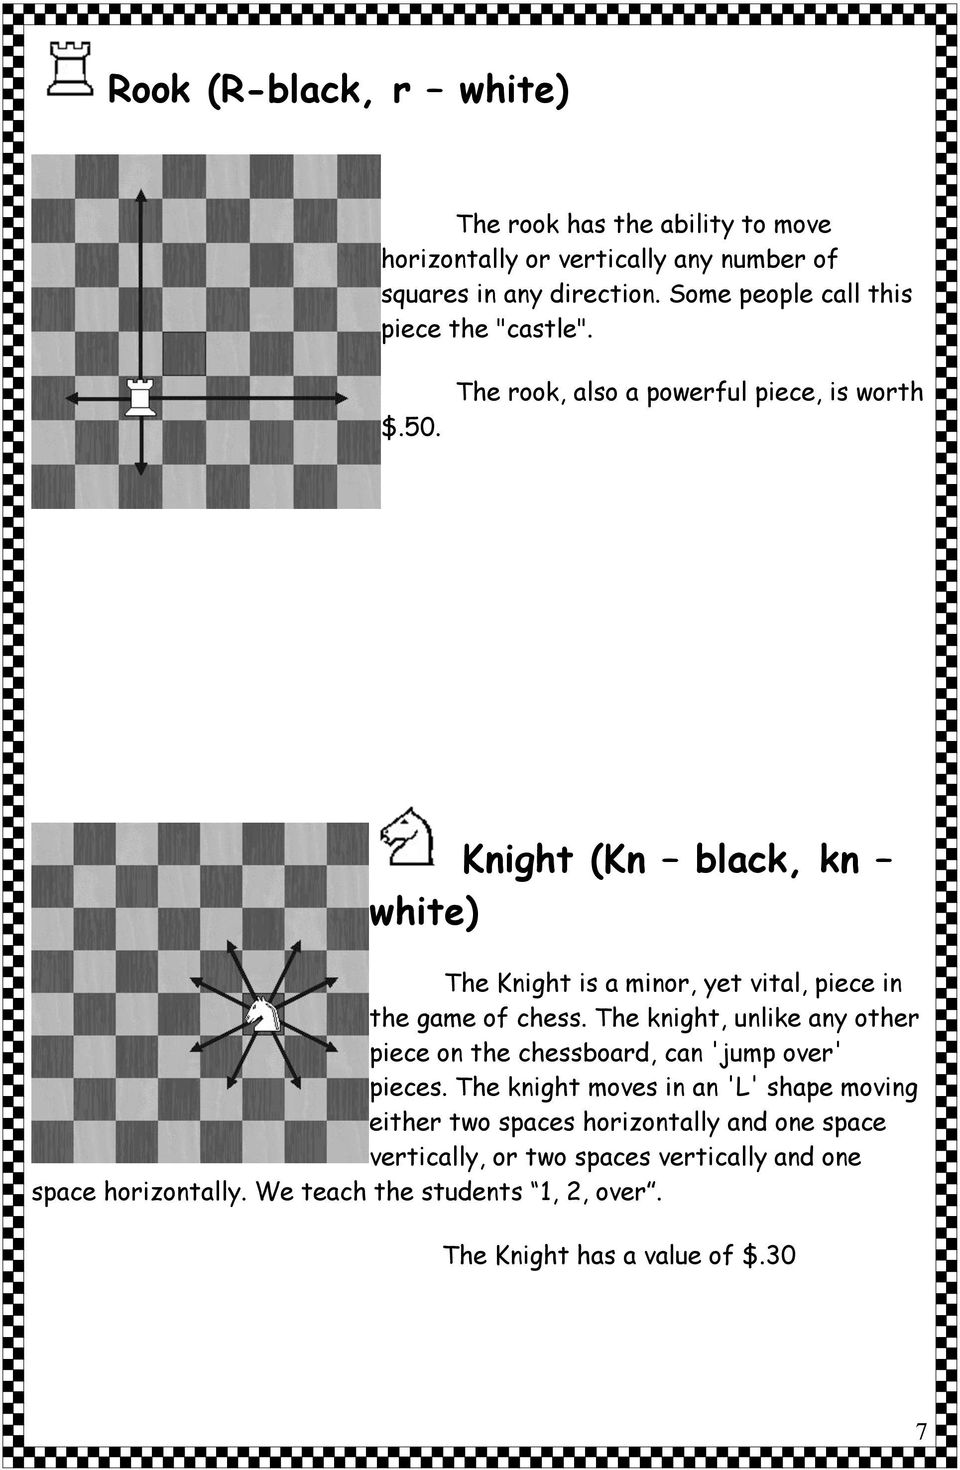 The rook, also a powerful piece, is worth Knight (Kn black, kn white) The Knight is a minor, yet vital, piece in the game of chess.